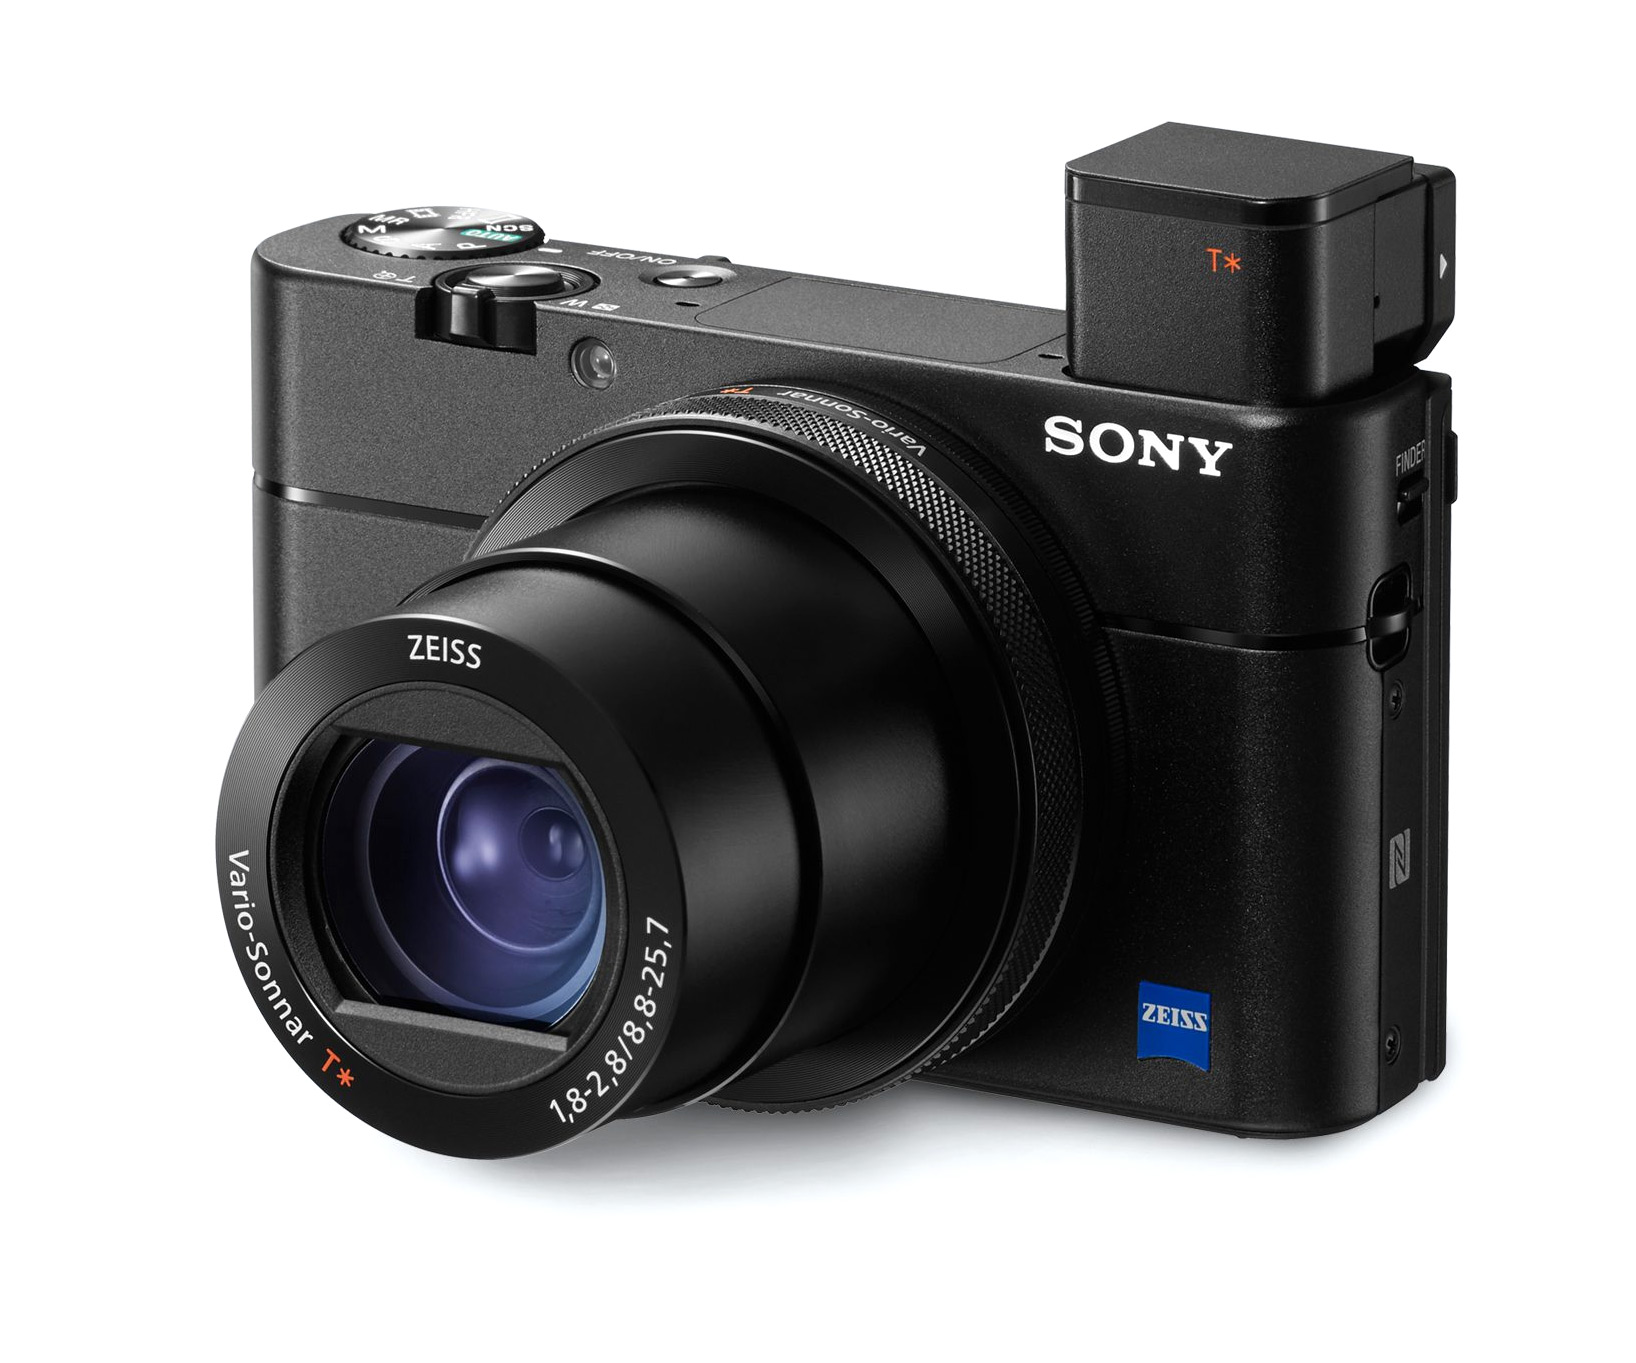 Sony replaces RX100 V with RX100 VA, bringing RX100 VI